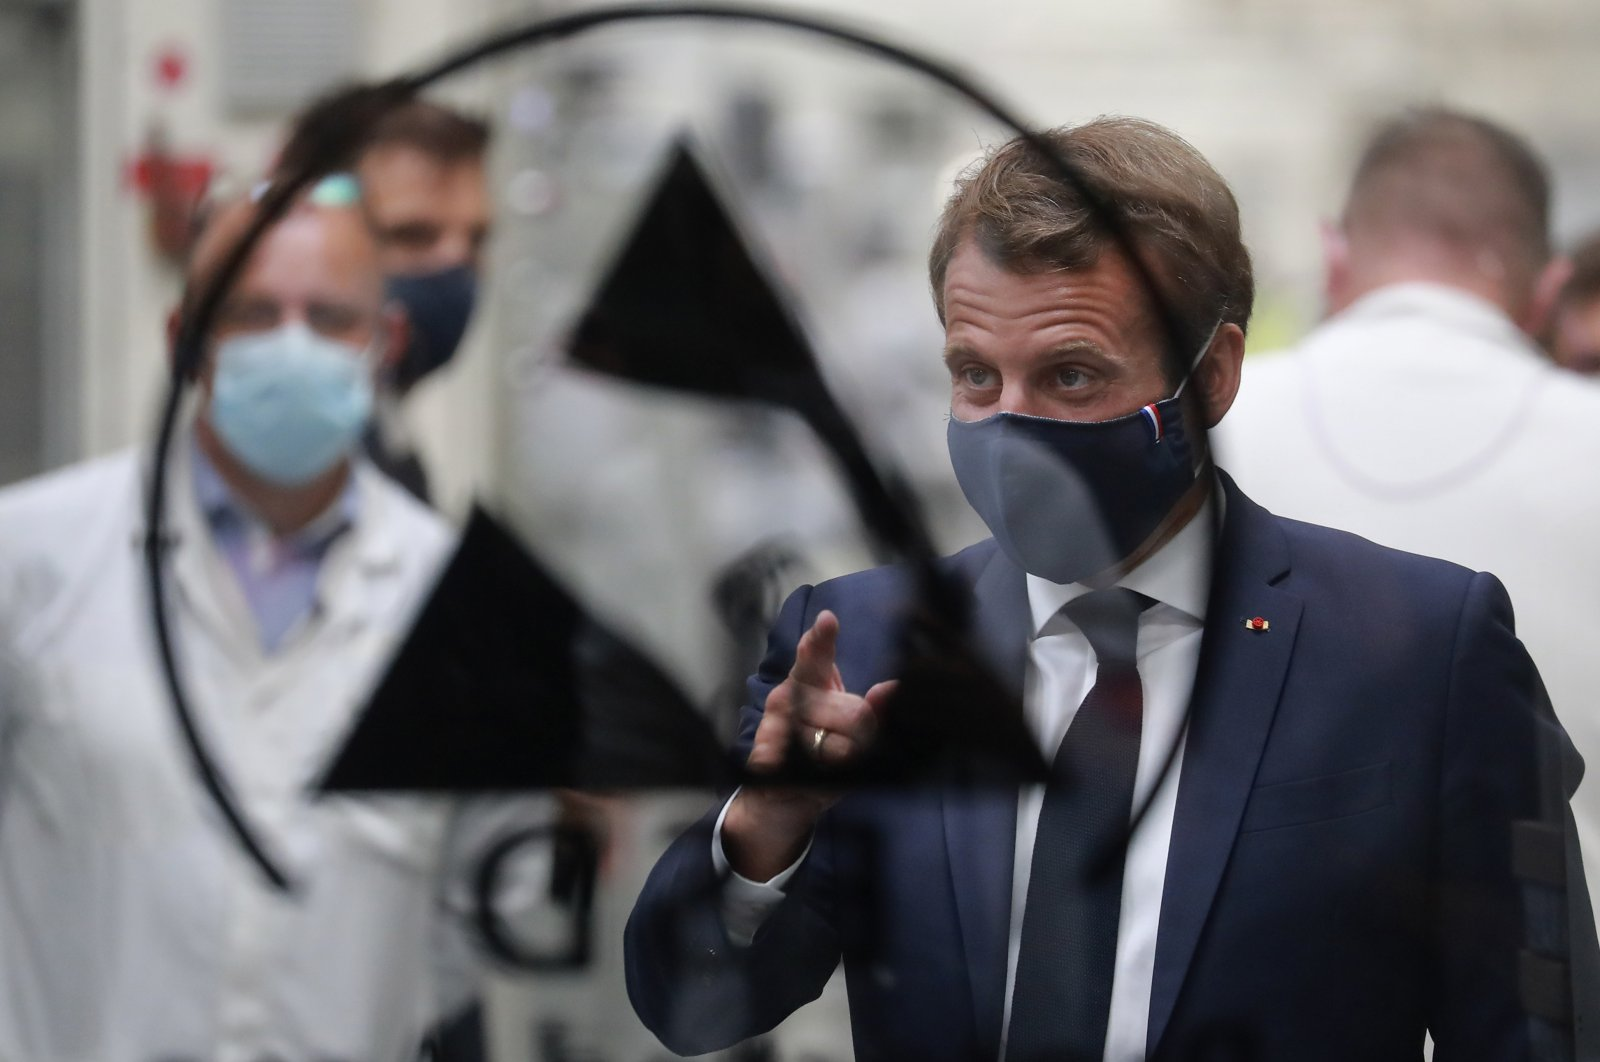 French President Emmanuel Macron wears a face mask during his visit to Valeo's manufacturing plant, in Etaples, northern France, May 26, 2020. (AP Photo)